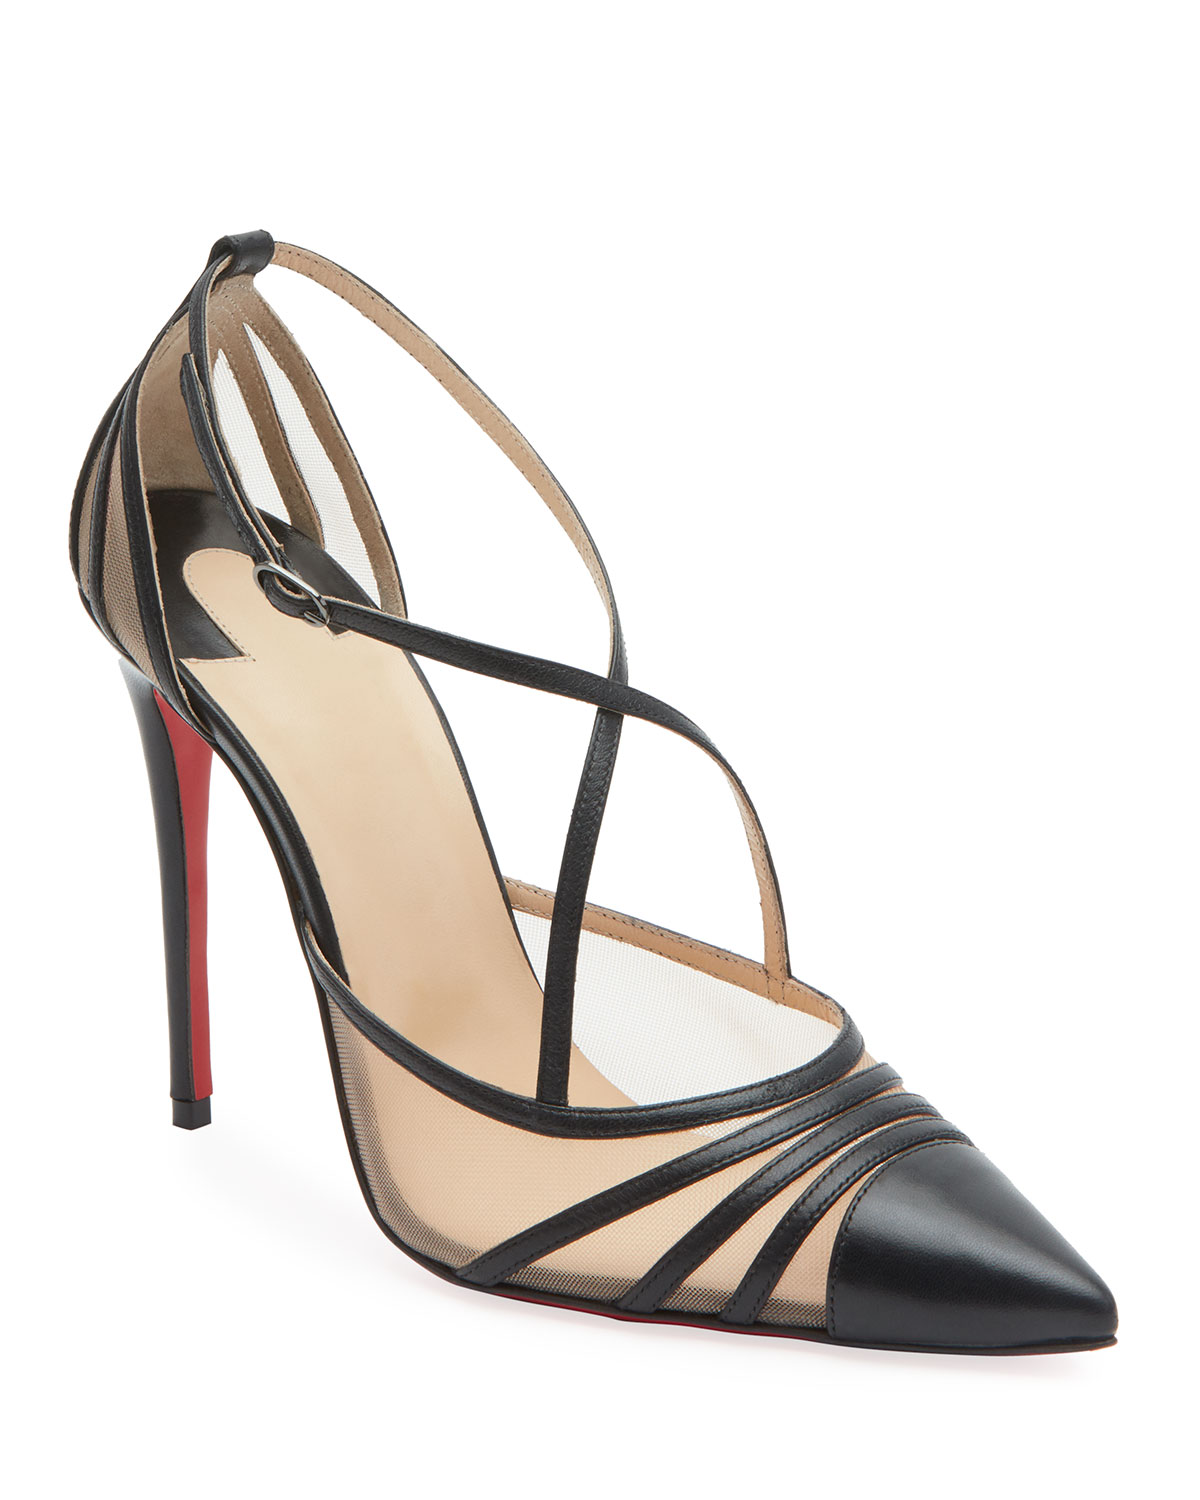 2797fe264c7a Christian Louboutin Theodorella Strappy Red Sole Pumps